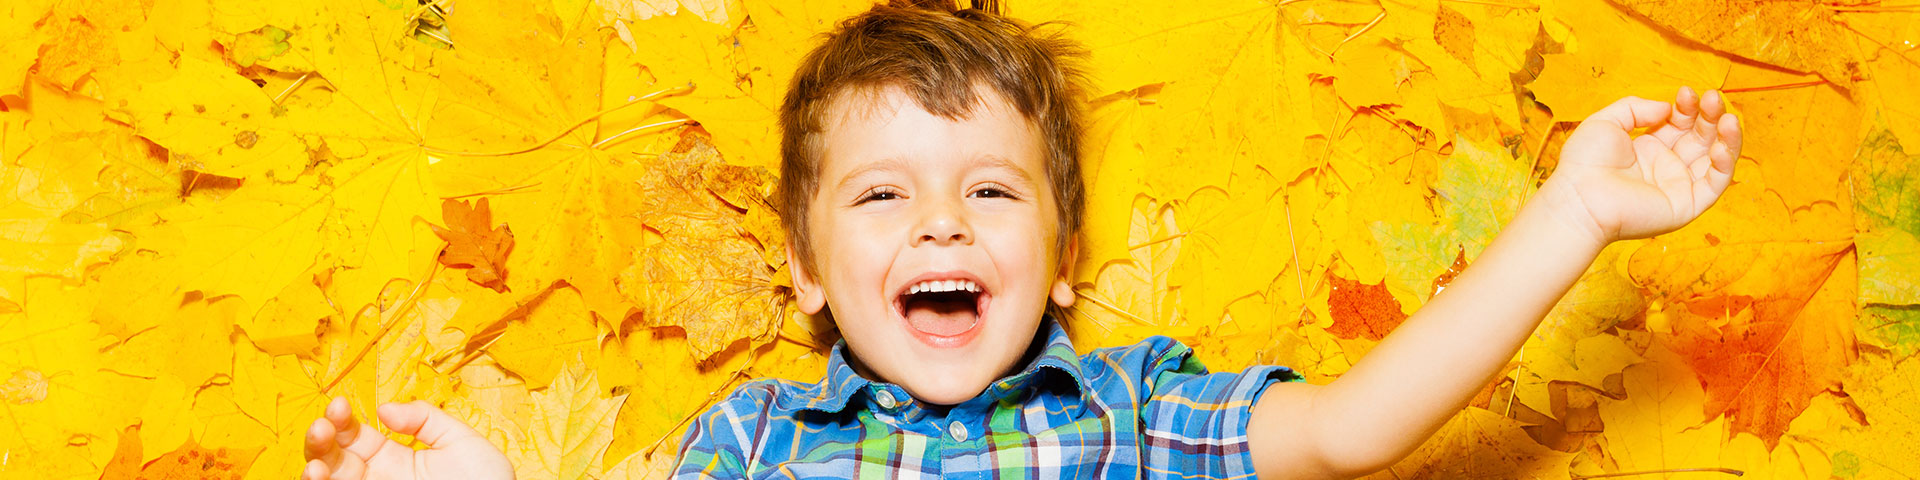 Speech therapy gives children confidence